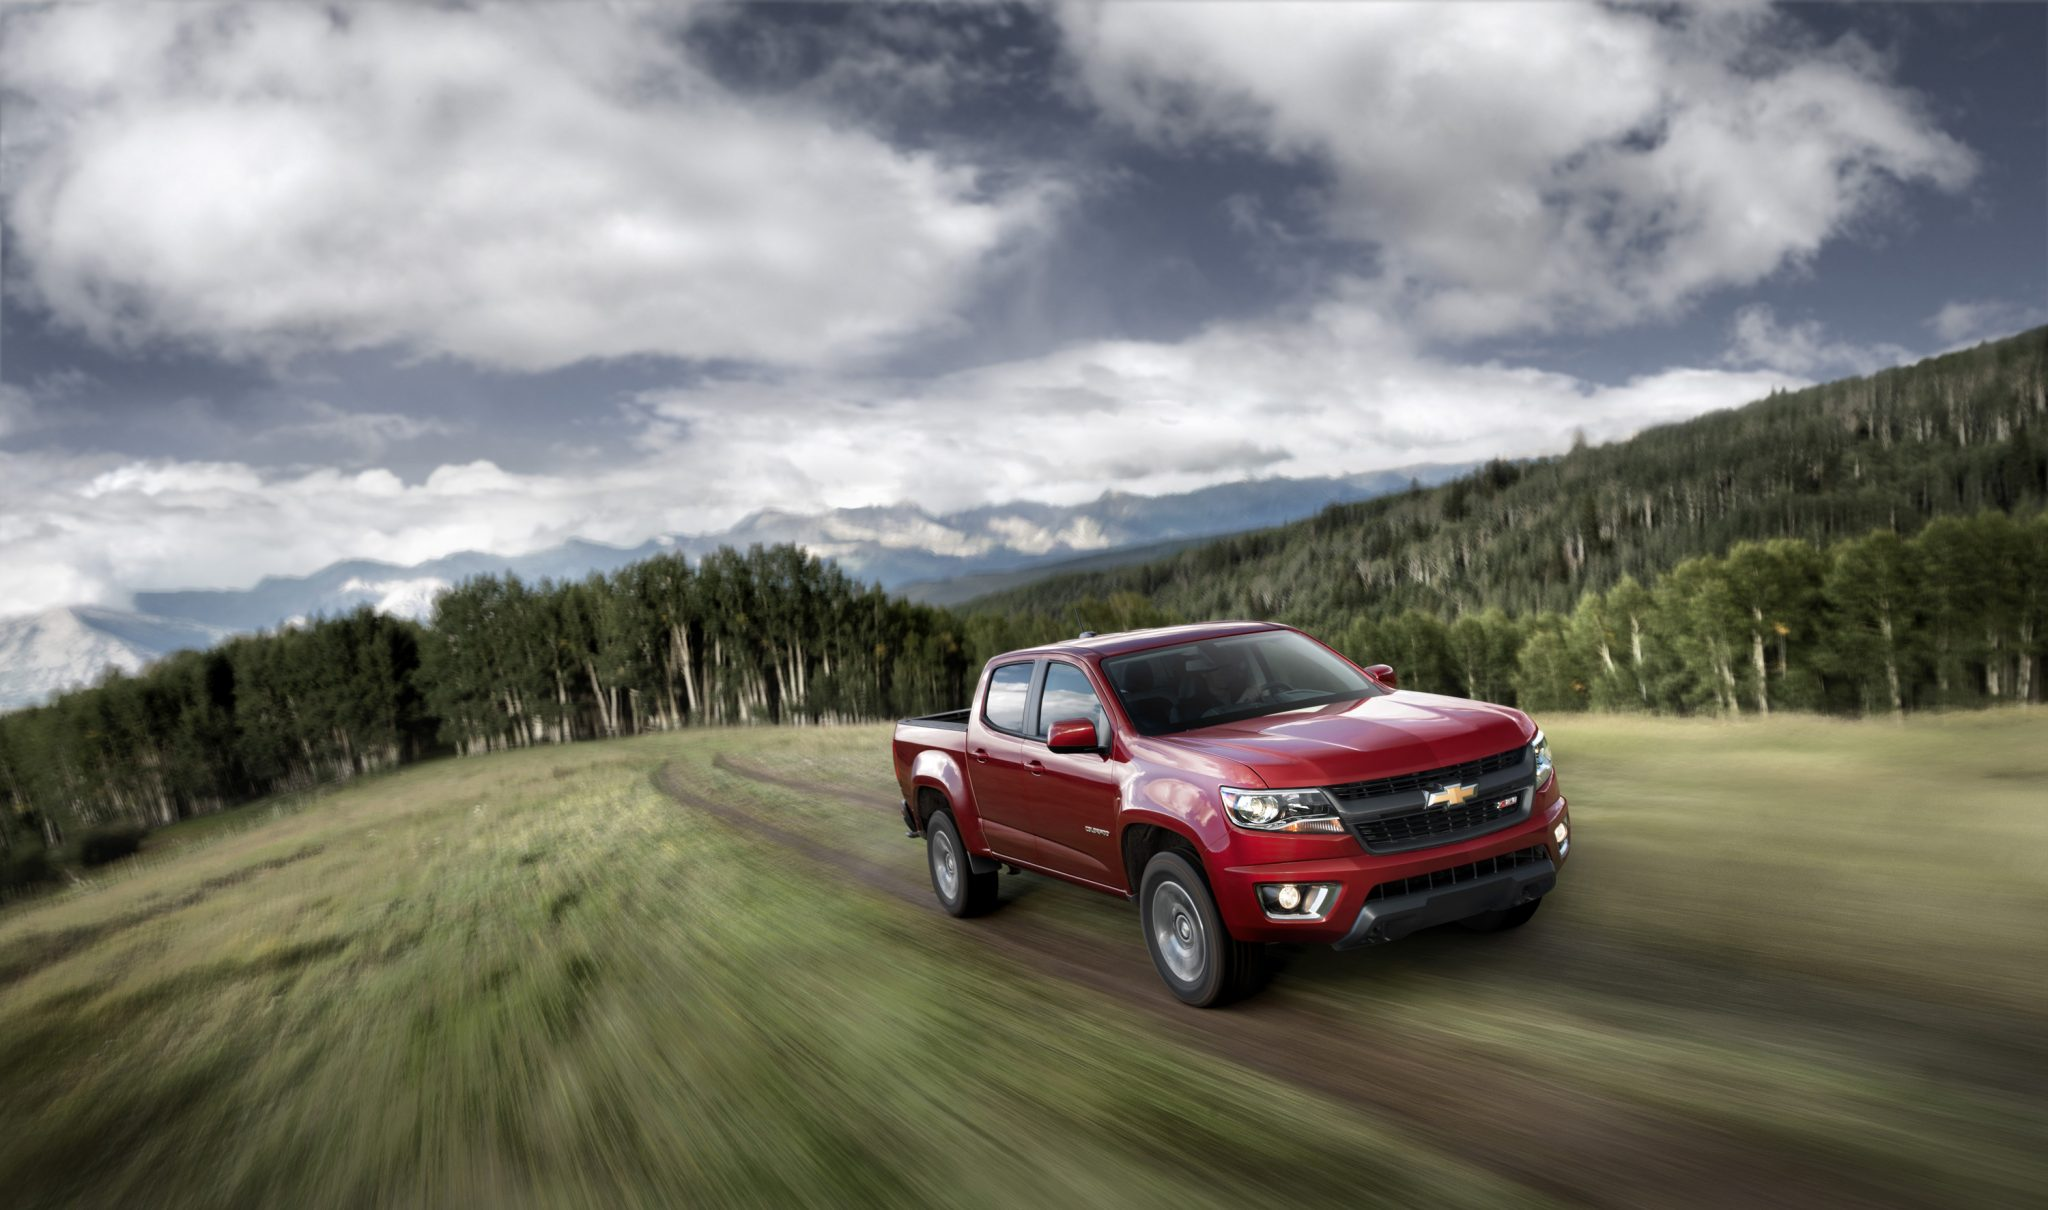 2015 Chevy Colorado Appearance Packages Coming Soon The